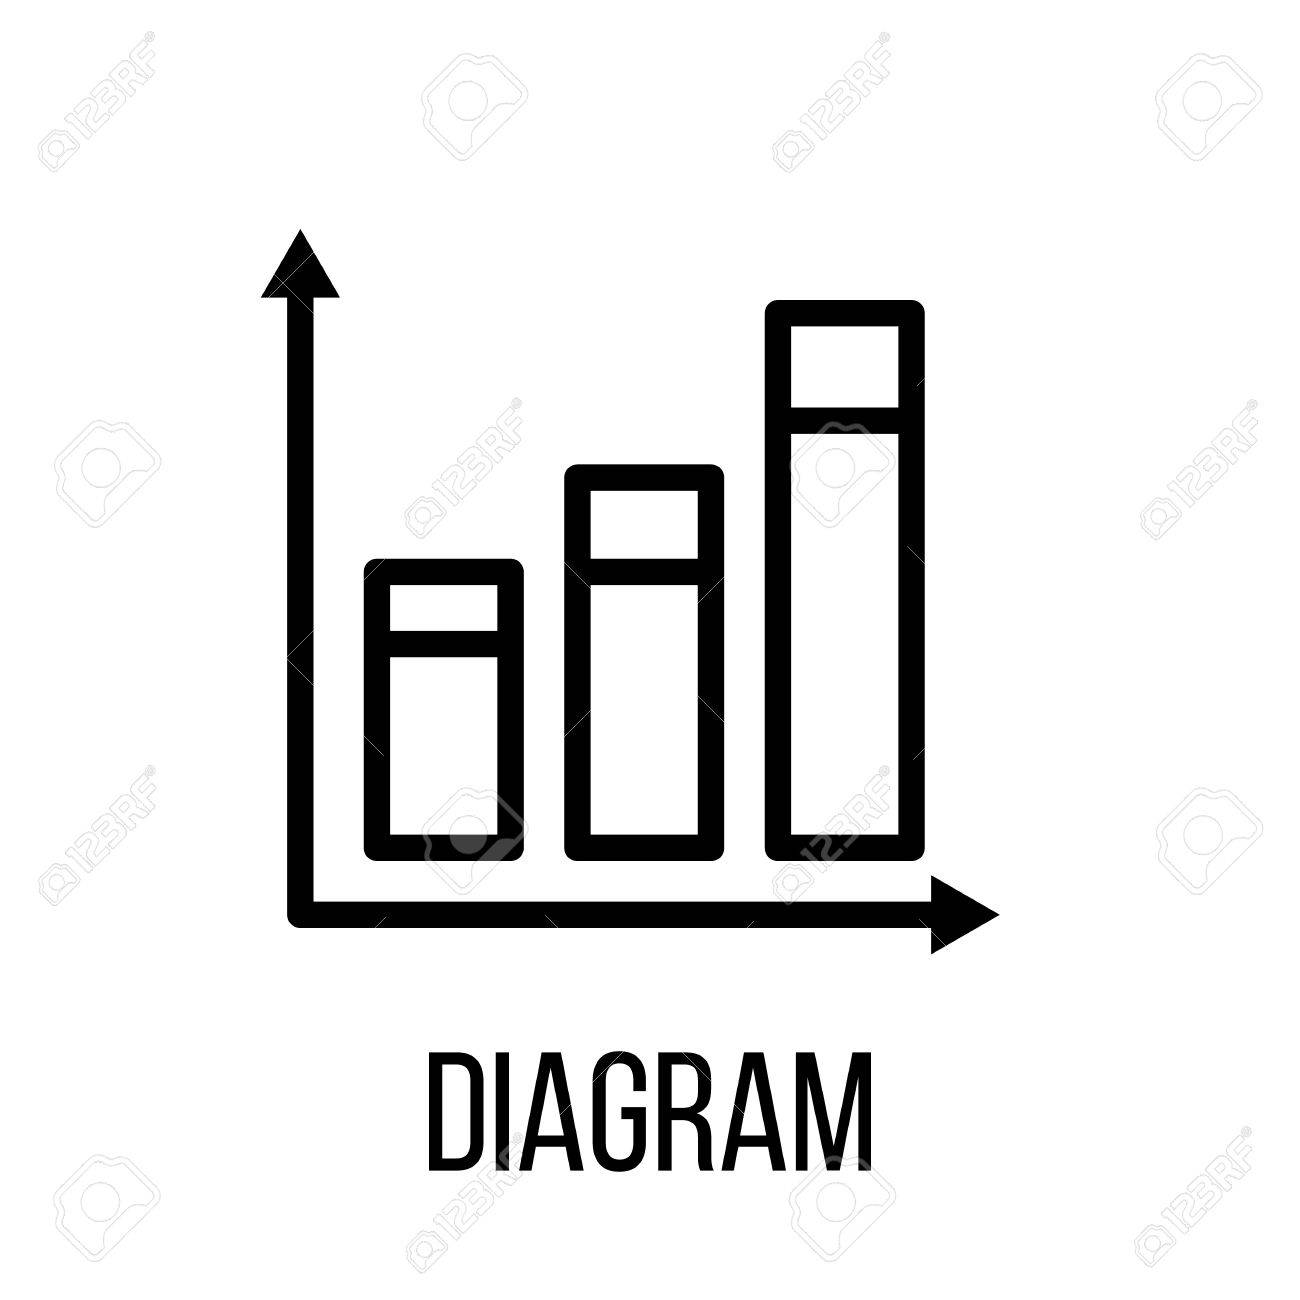 Diagram icon in modern line style high quality black outline diagram icon in modern line style high quality black outline pictogram for web site design ccuart Images